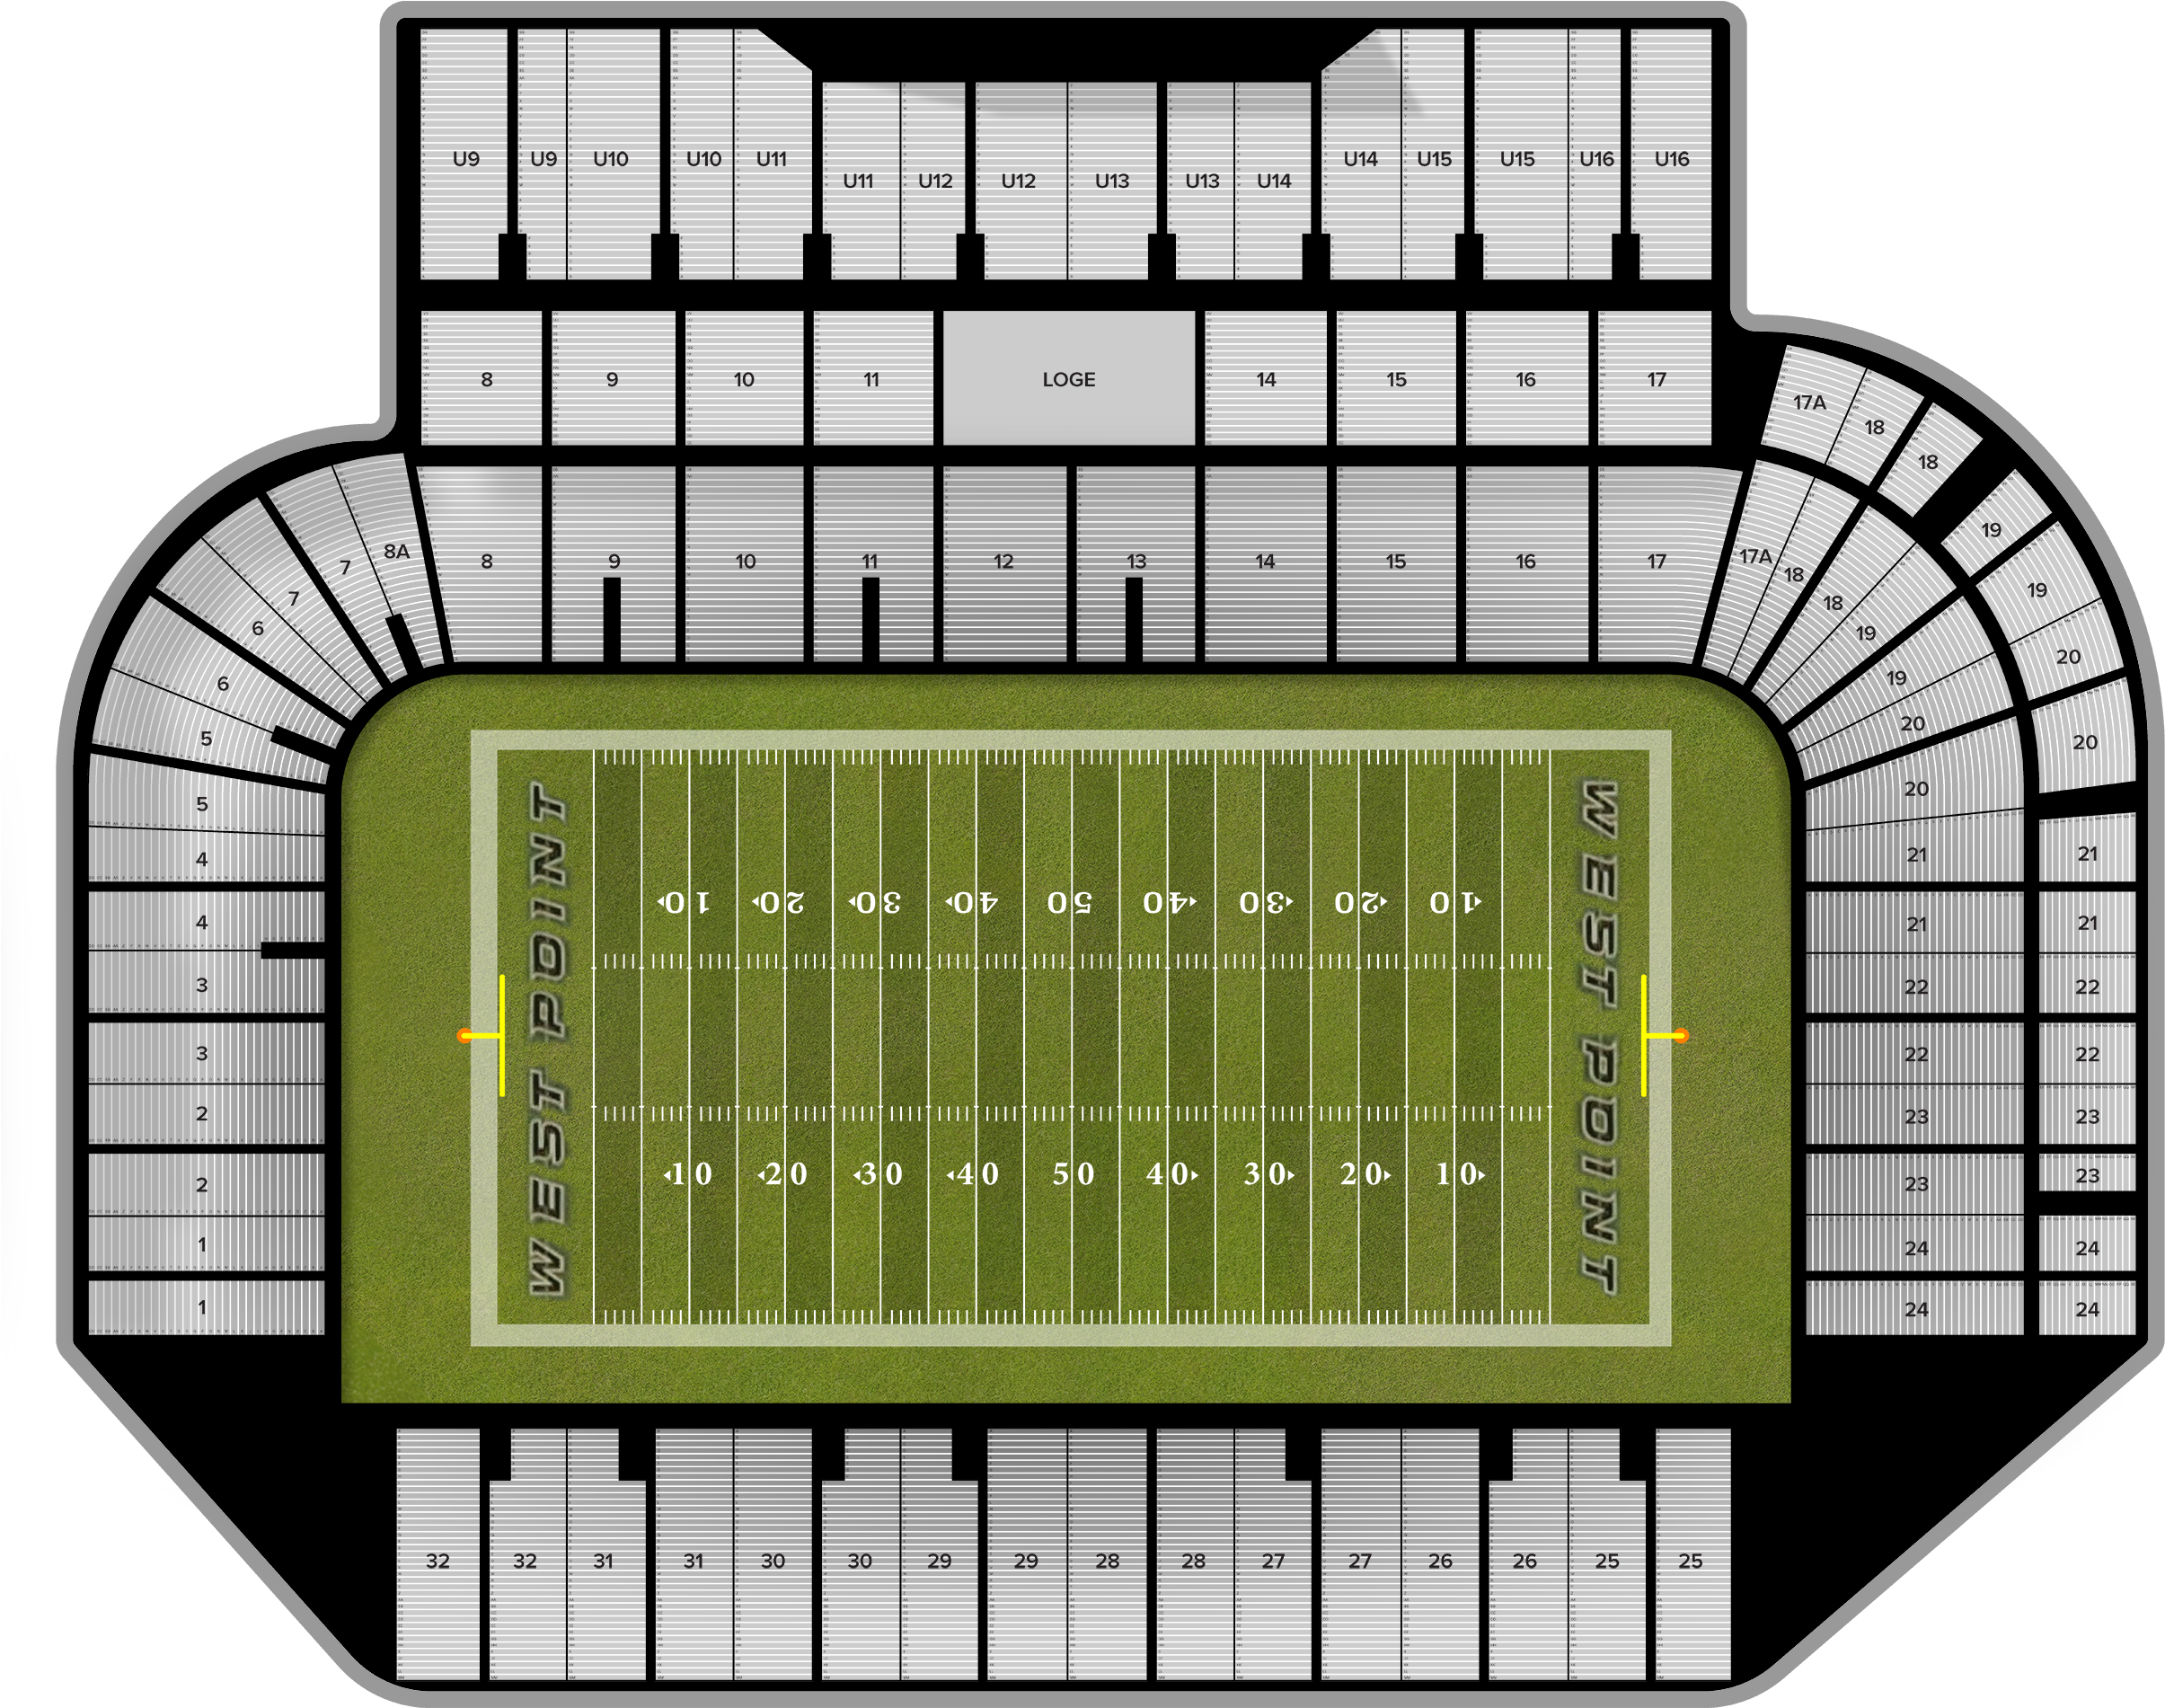 Army Michie Stadium Seating Chart Elcho Table 2560x1936 Png